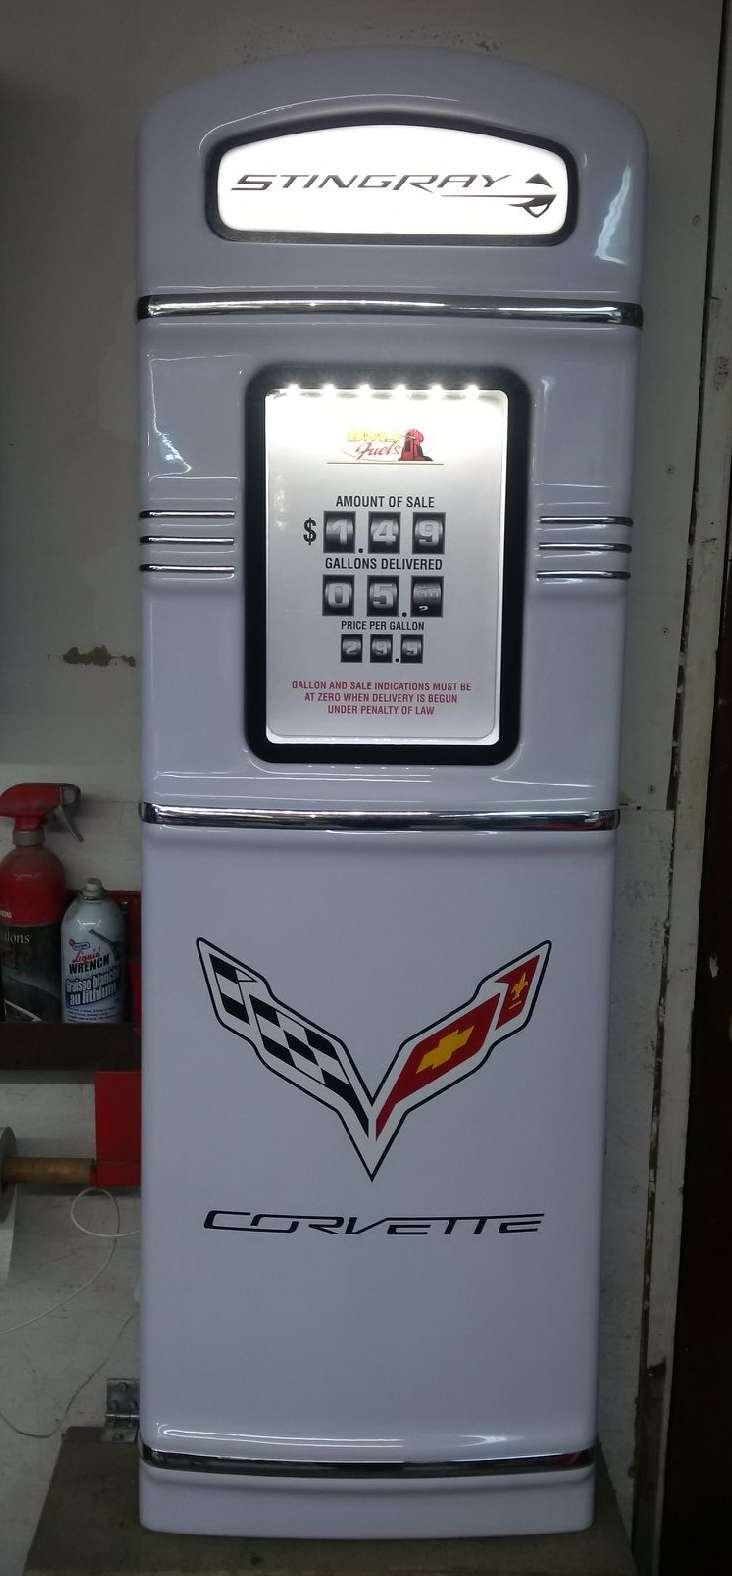 C7 Corvette gas pump